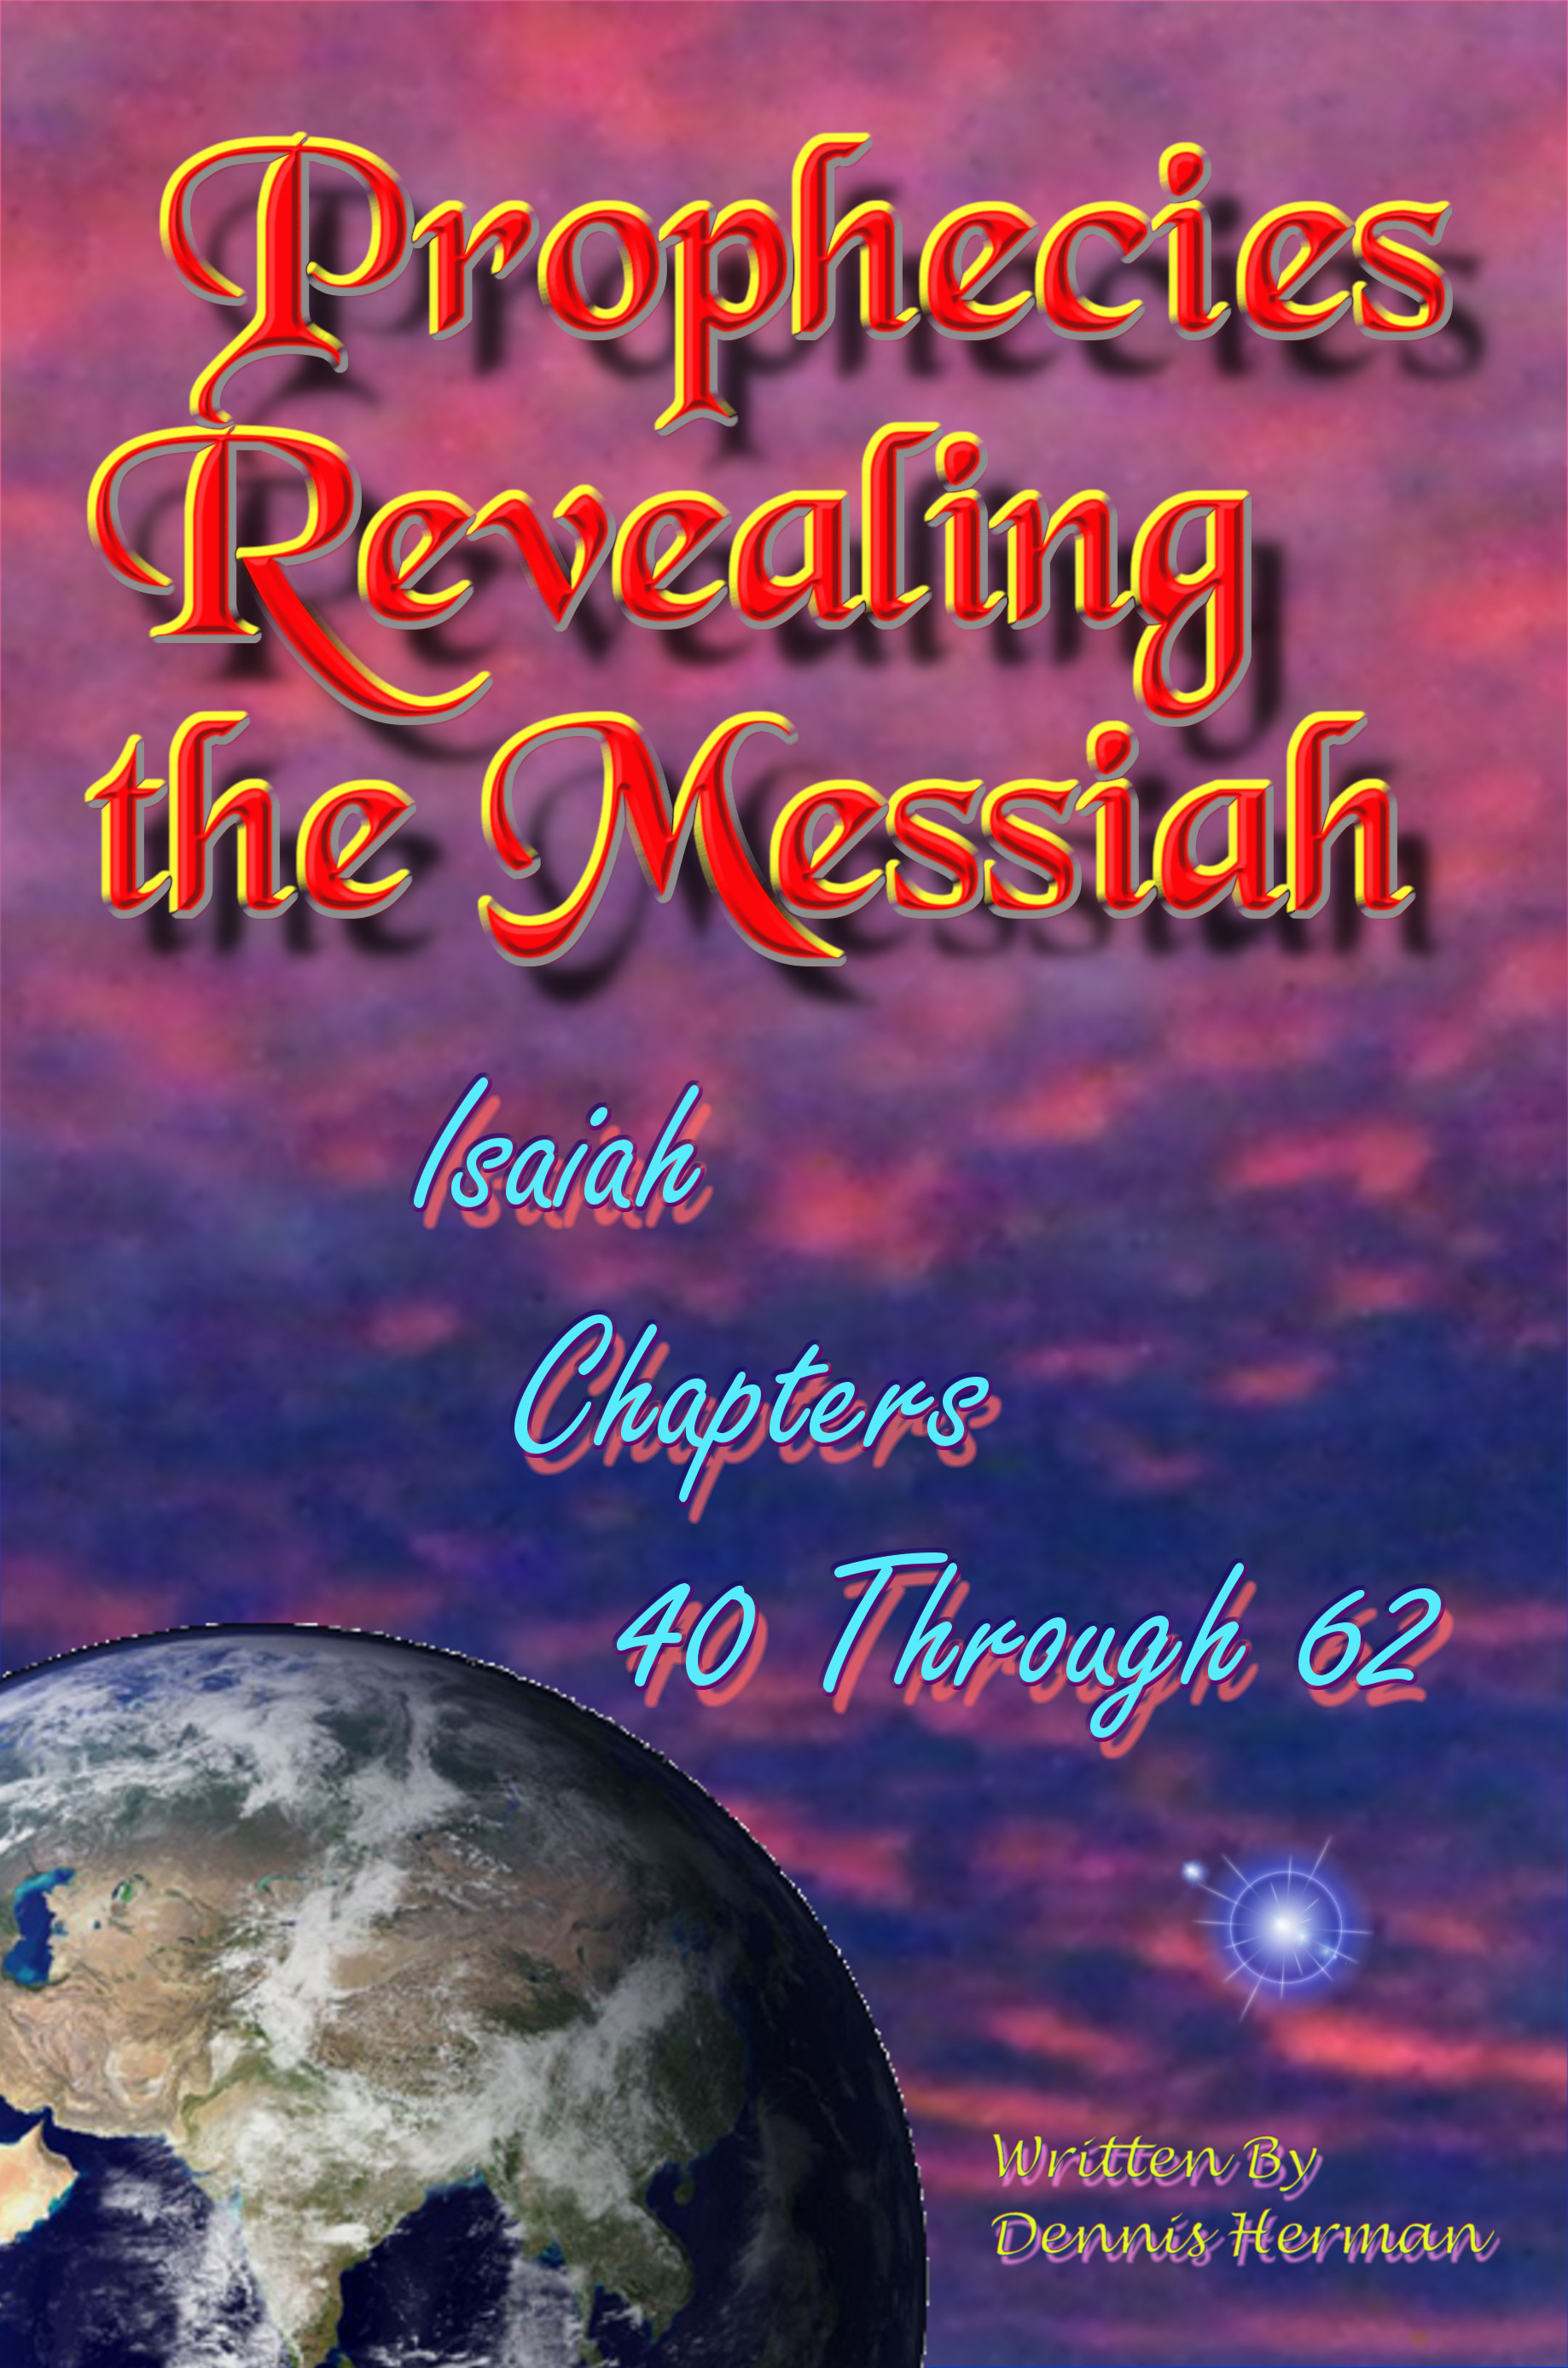 PProphecies Revealing the Messiah Isaiah Chapters 40 Through 62